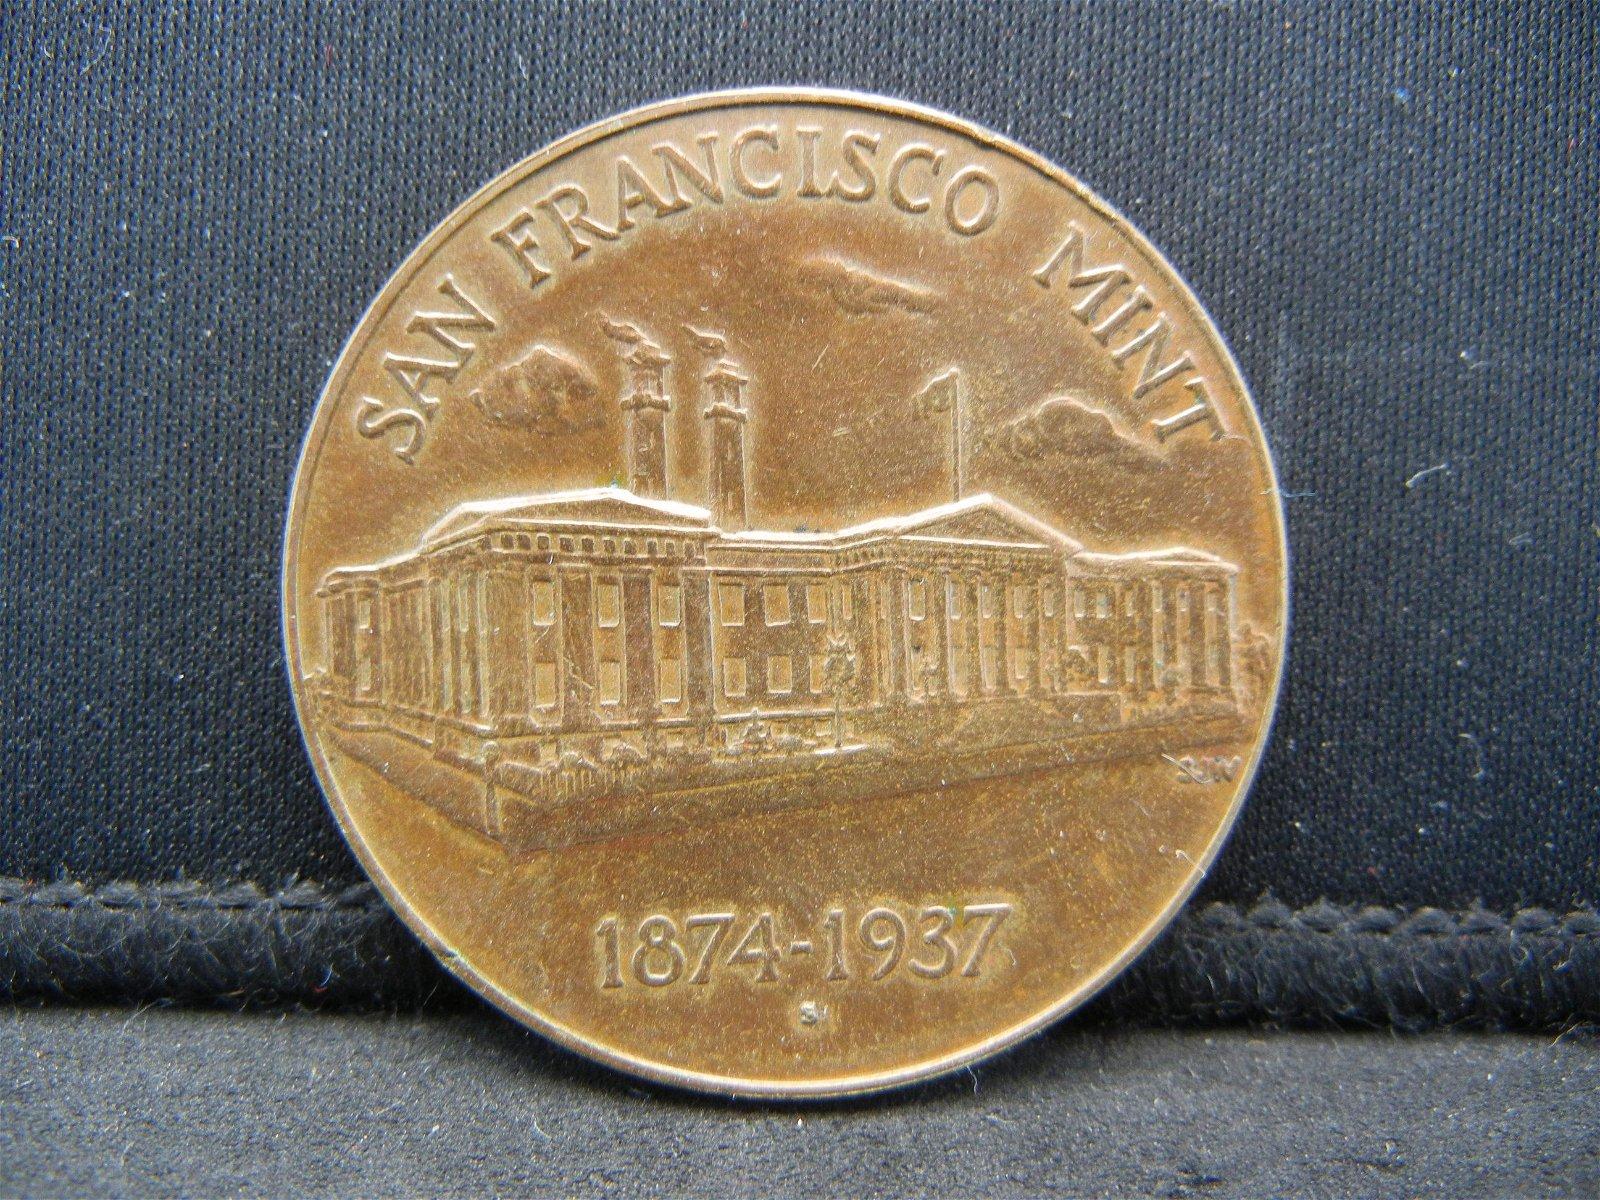 1874-1937 SAN FRANCISCO MINT, RARE FIND, 82 YEARS OLD